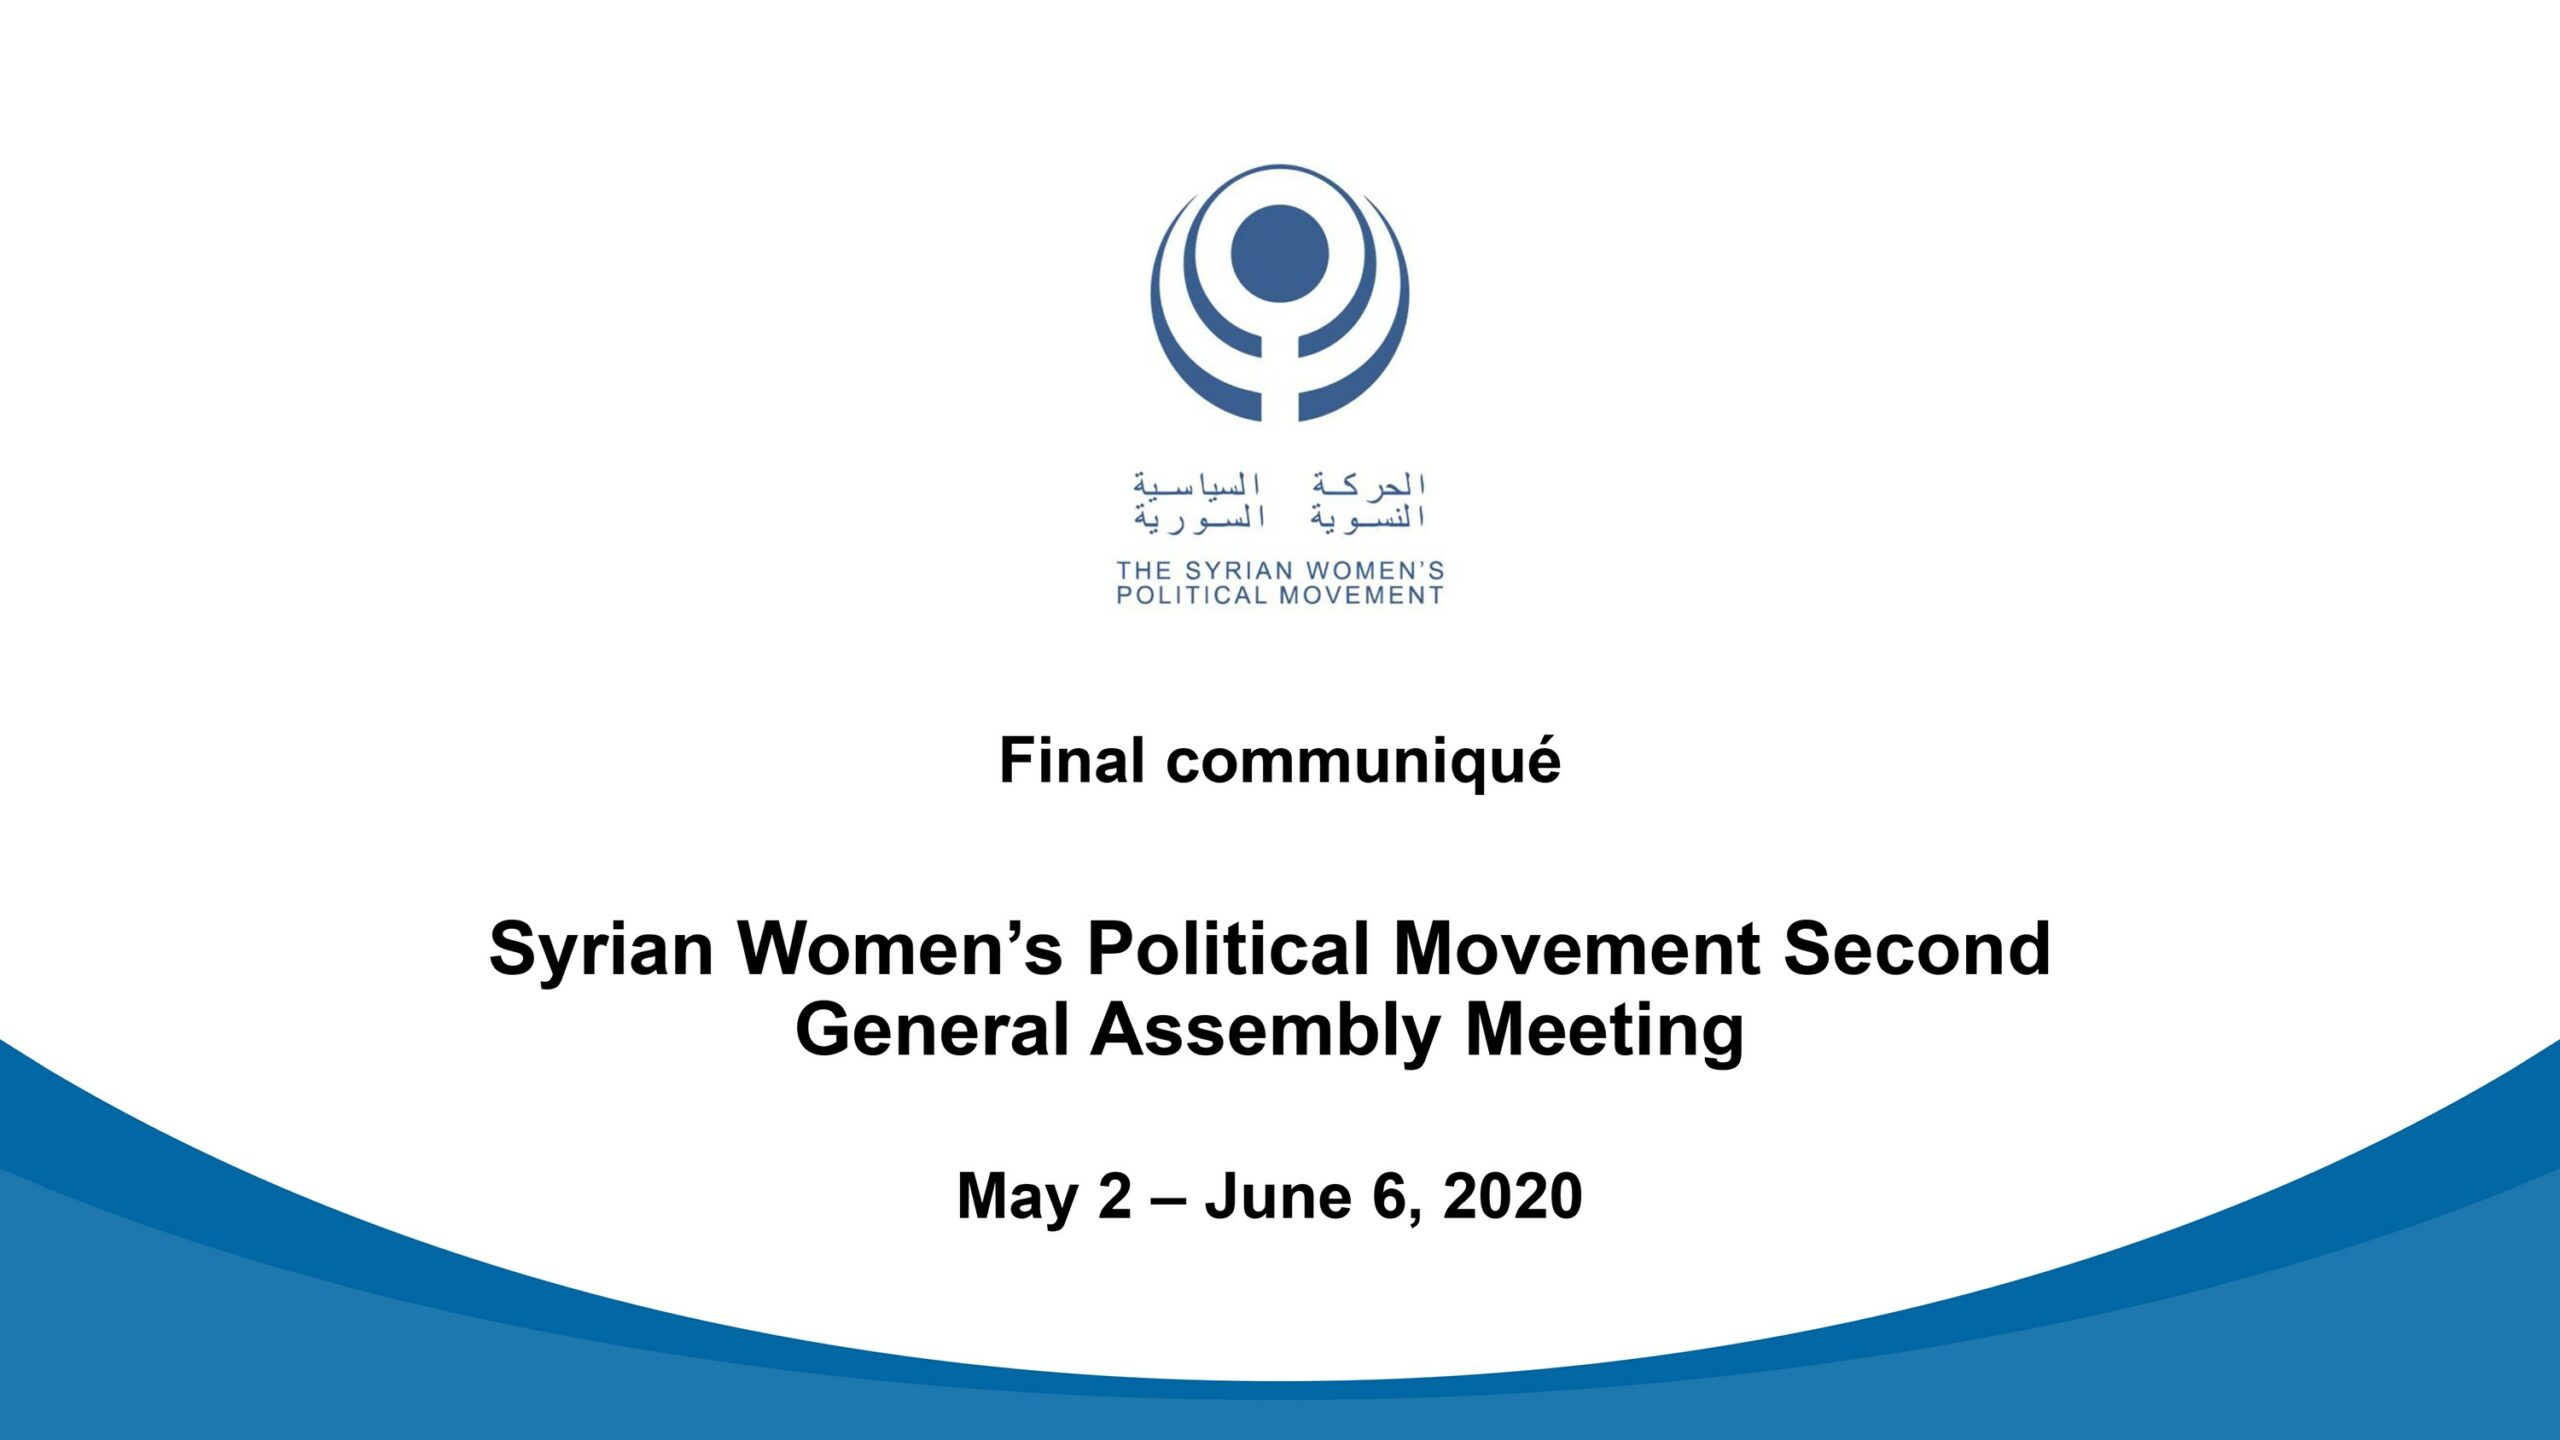 Final communiqué Syrian Women's Political Movement Second General Assembly Meeting 2 May till 12 June 2020